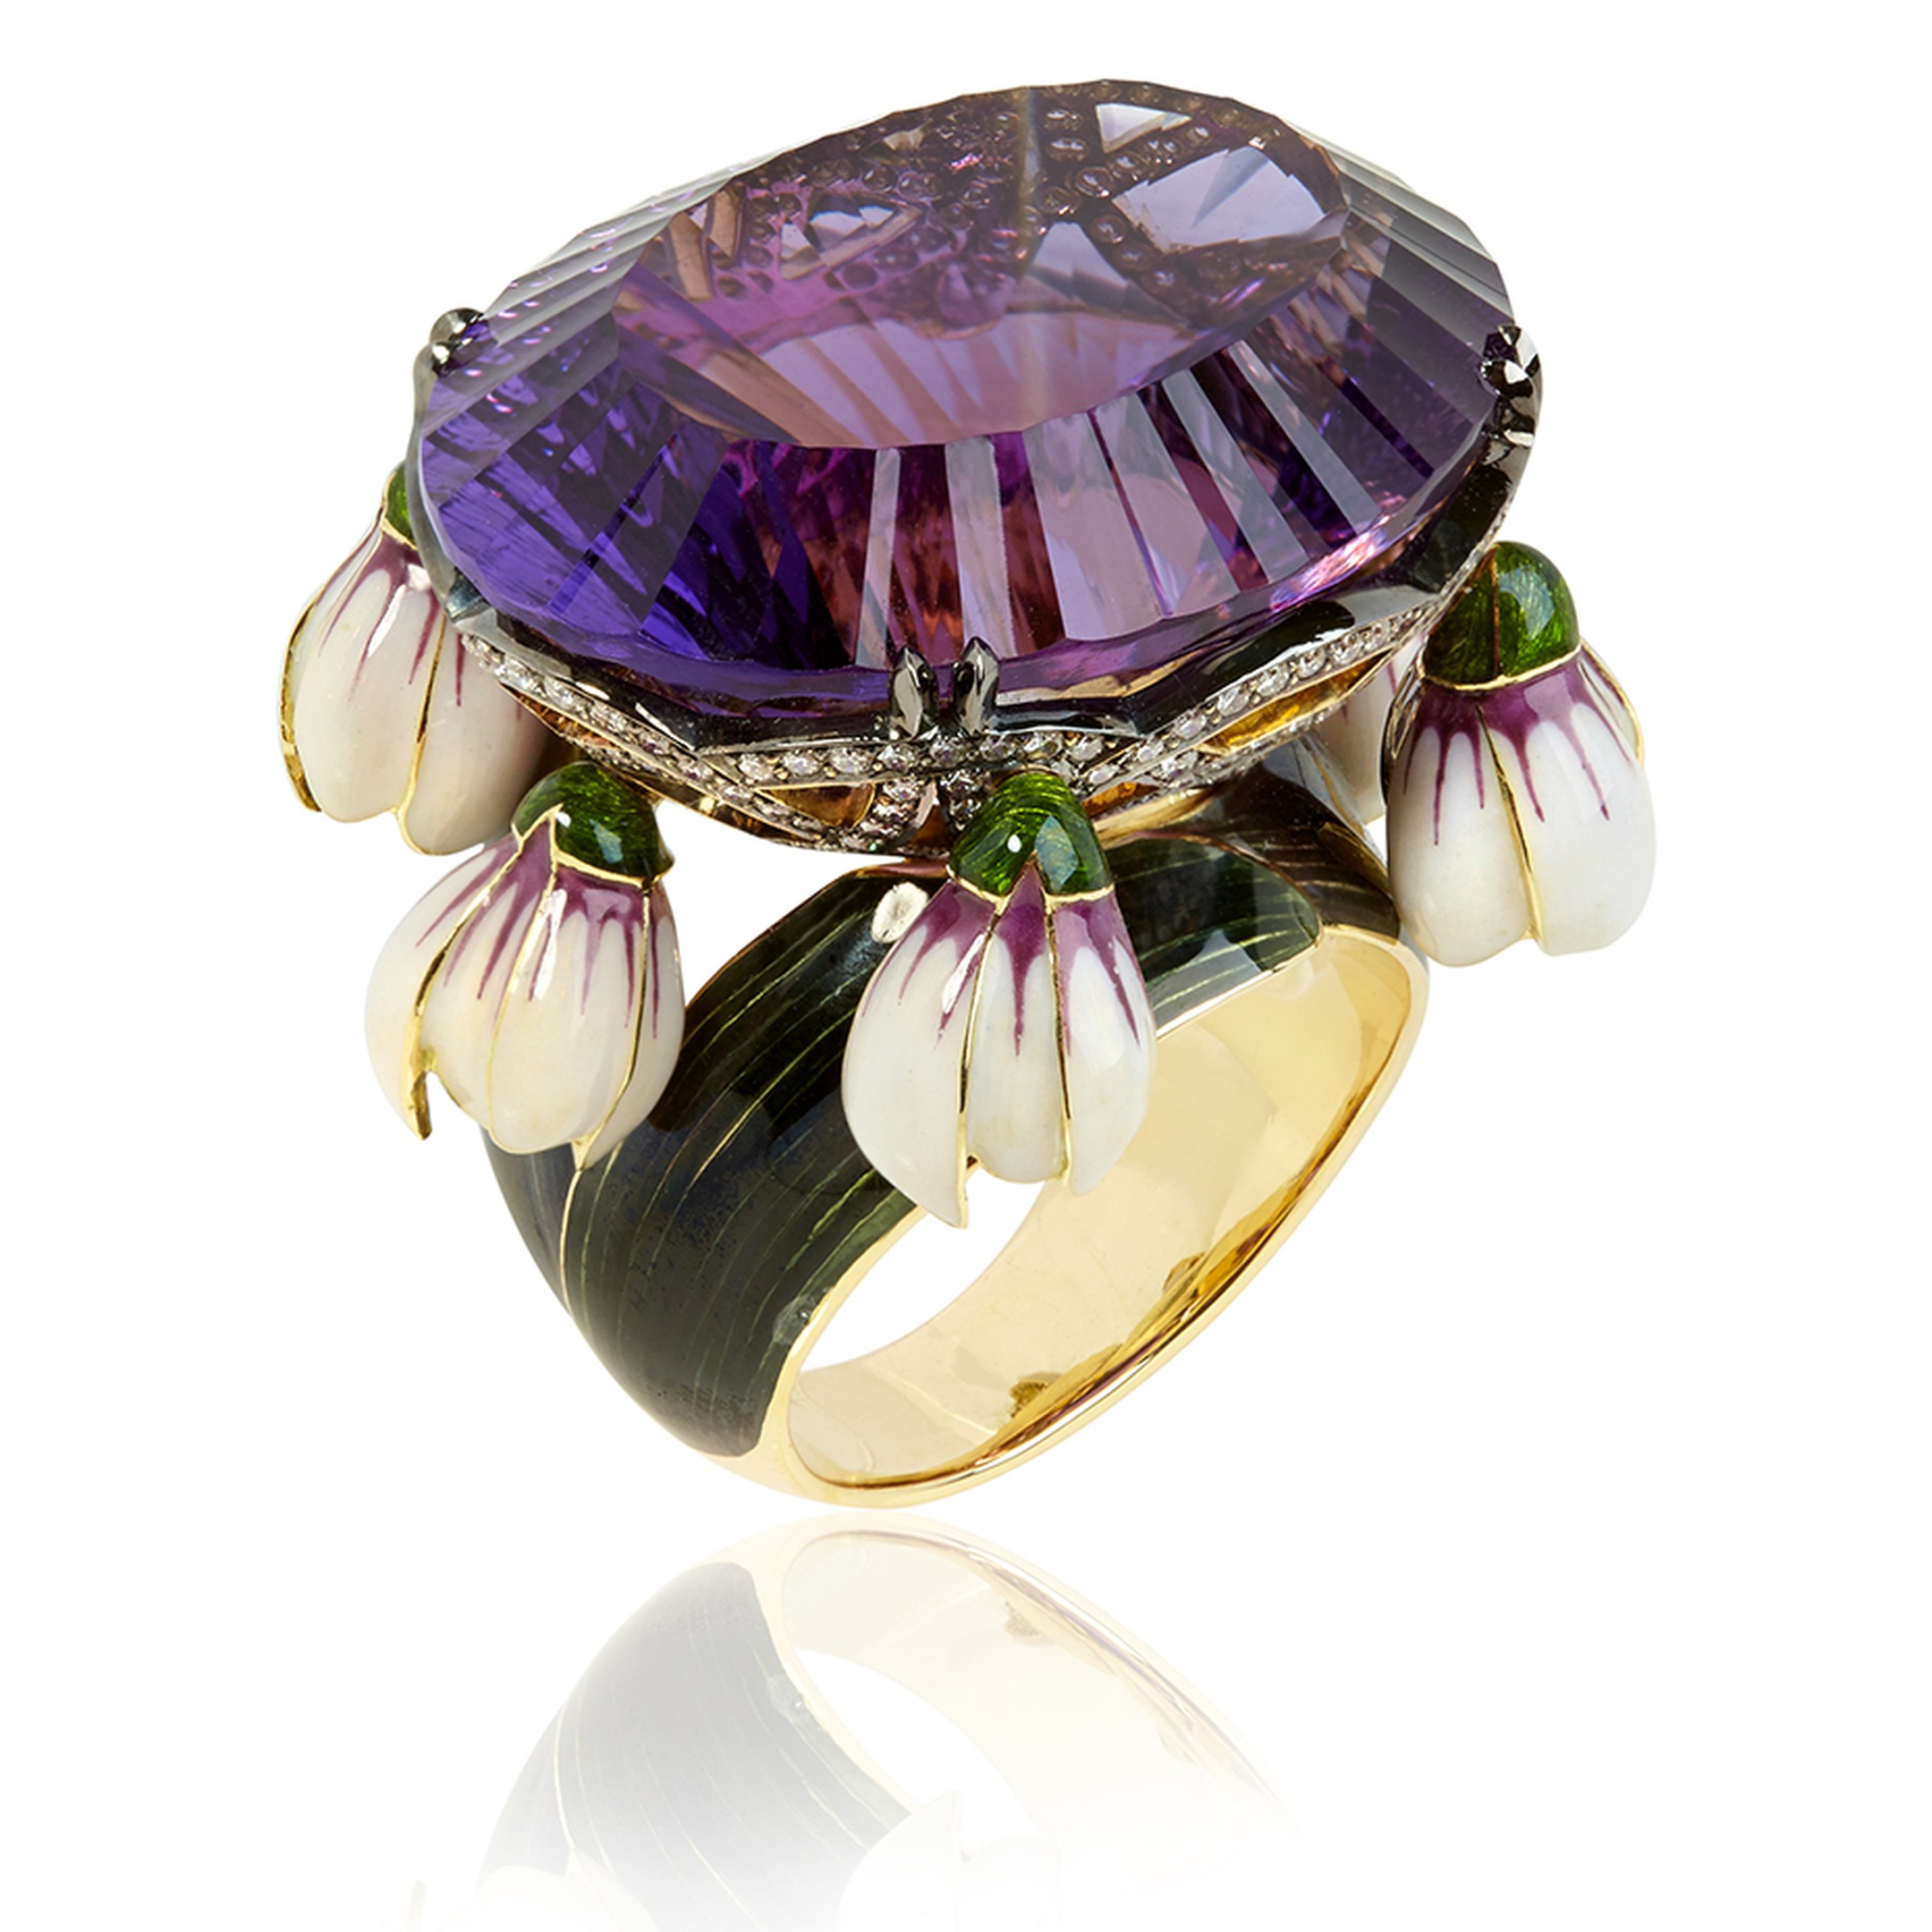 llgiz for Annoushka Crocus ring in yellow gold featuring a 47.93ct amethyst surrounded by diamonds and dangling enamel petals (£42,000).